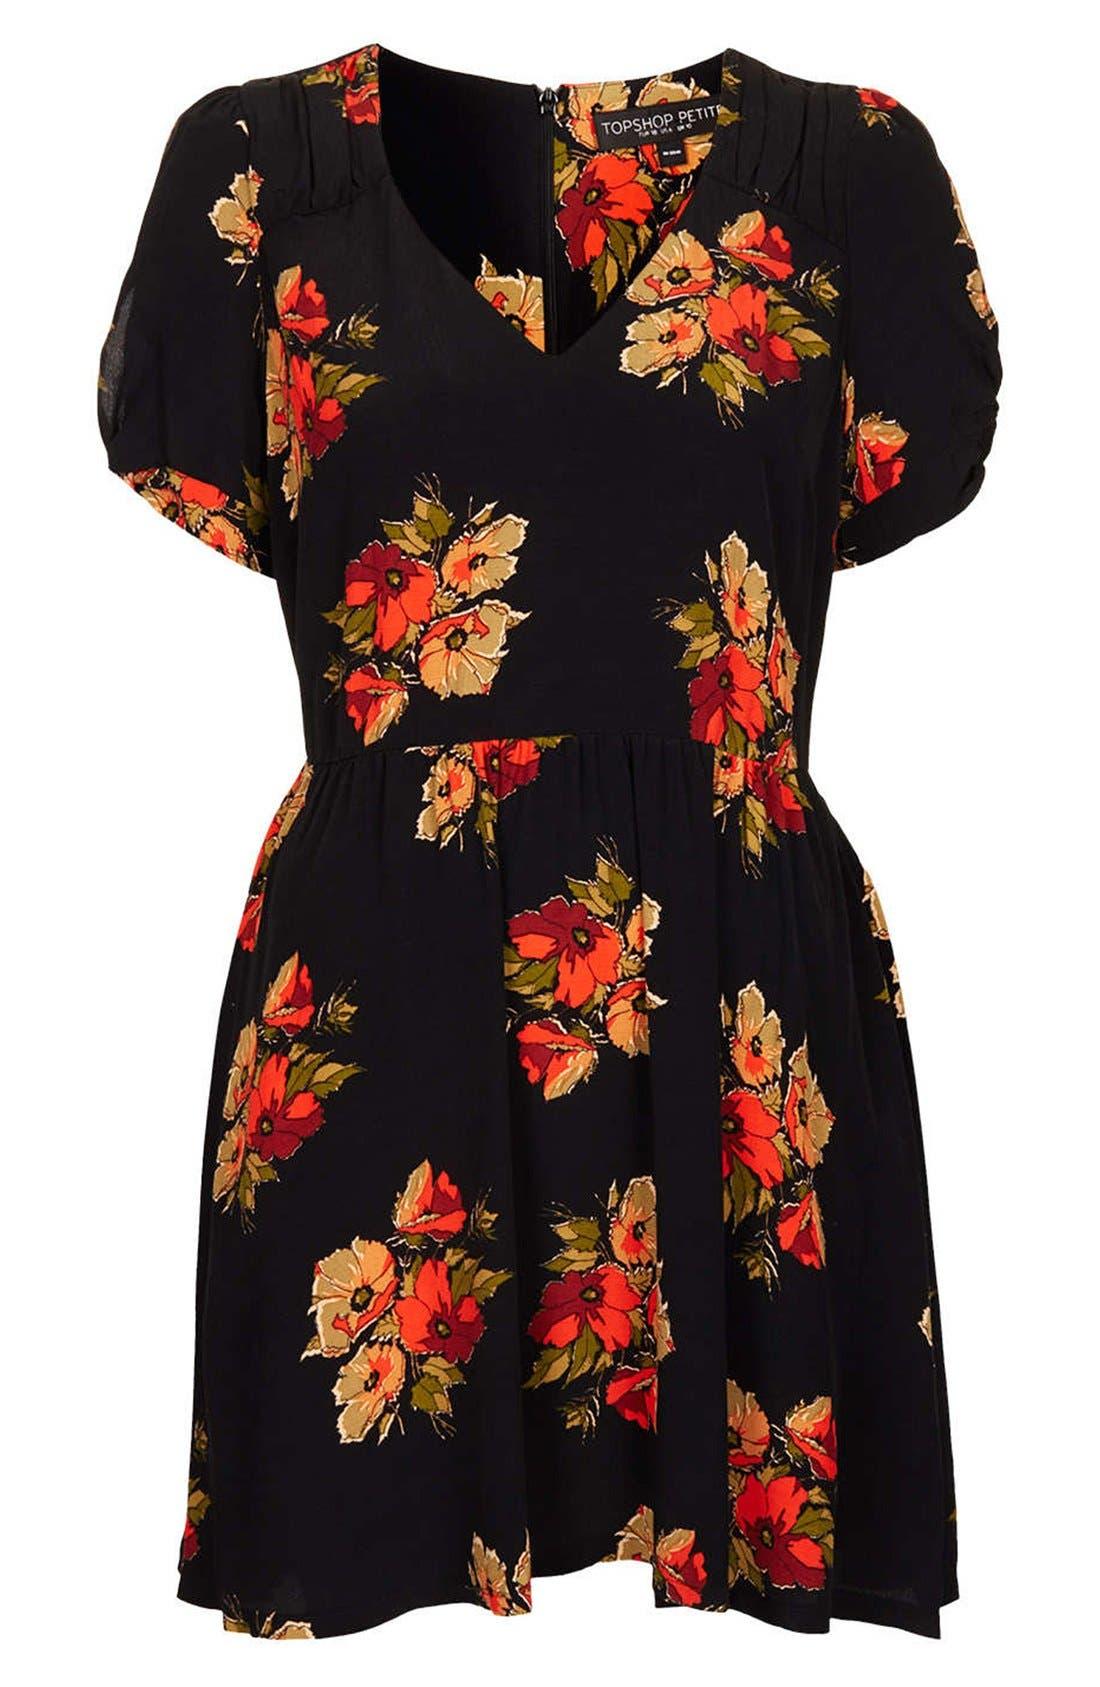 Main Image - Topshop 'Autumn Floral' Tea Dress (Petite)